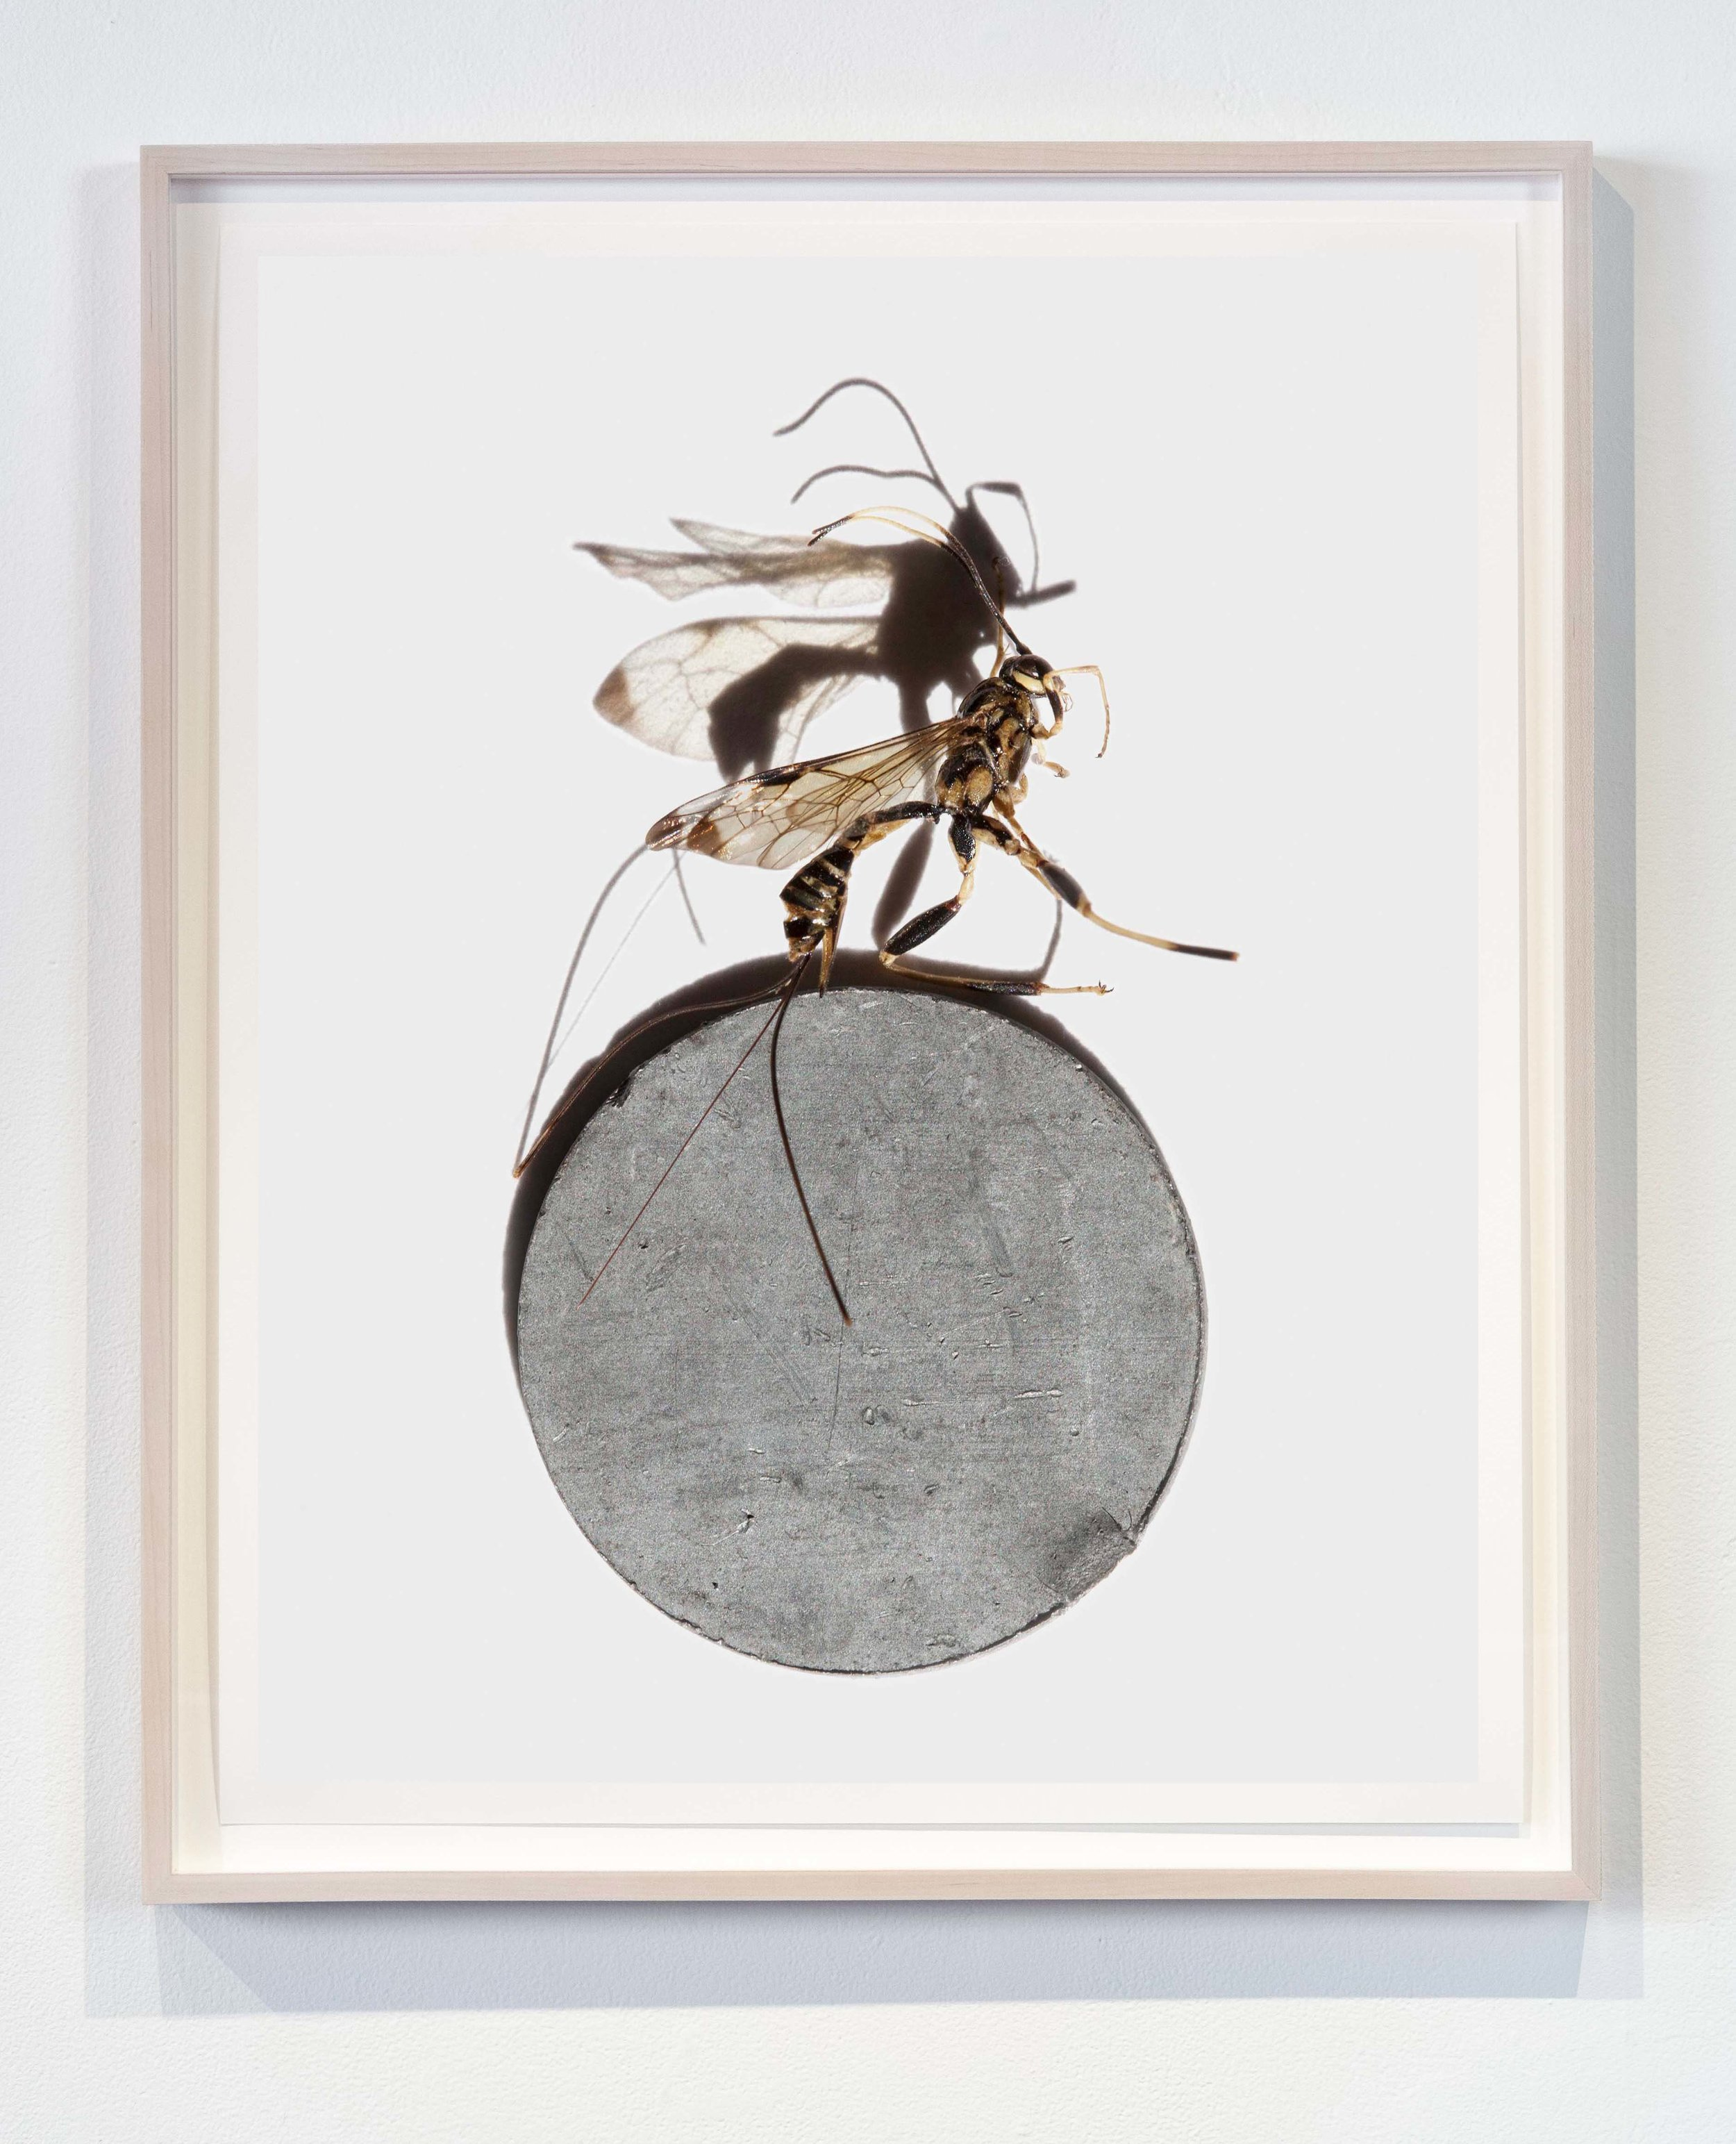 Wasp on Metal  20x25 inches